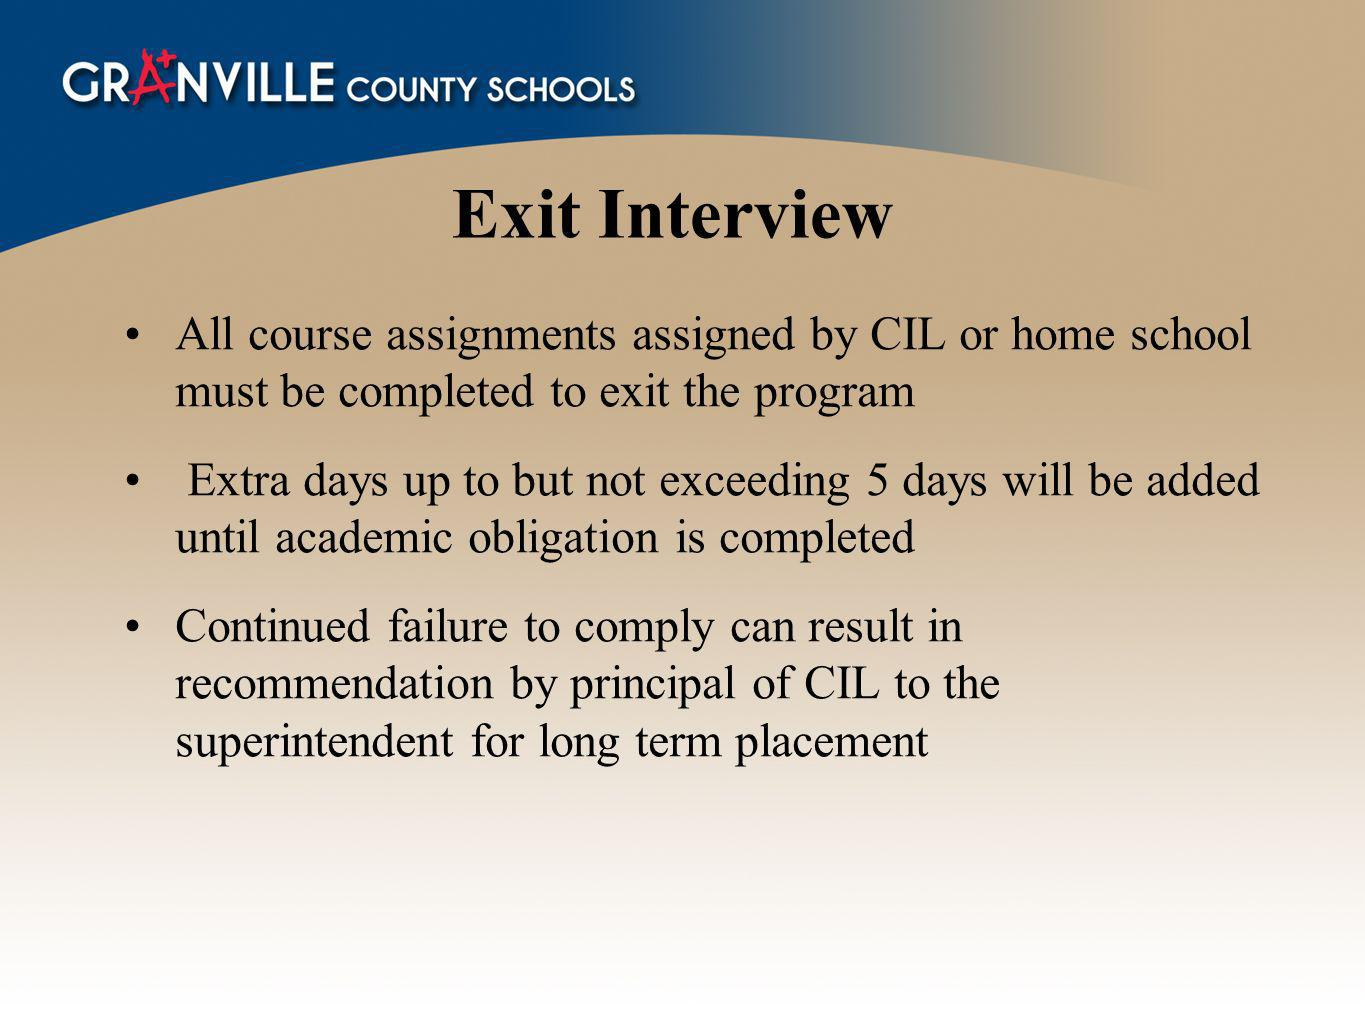 Exit Interview All course assignments assigned by CIL or home school must be completed to exit the program Extra days up to but not exceeding 5 days will be added until academic obligation is completed Continued failure to comply can result in recommendation by principal of CIL to the superintendent for long term placement